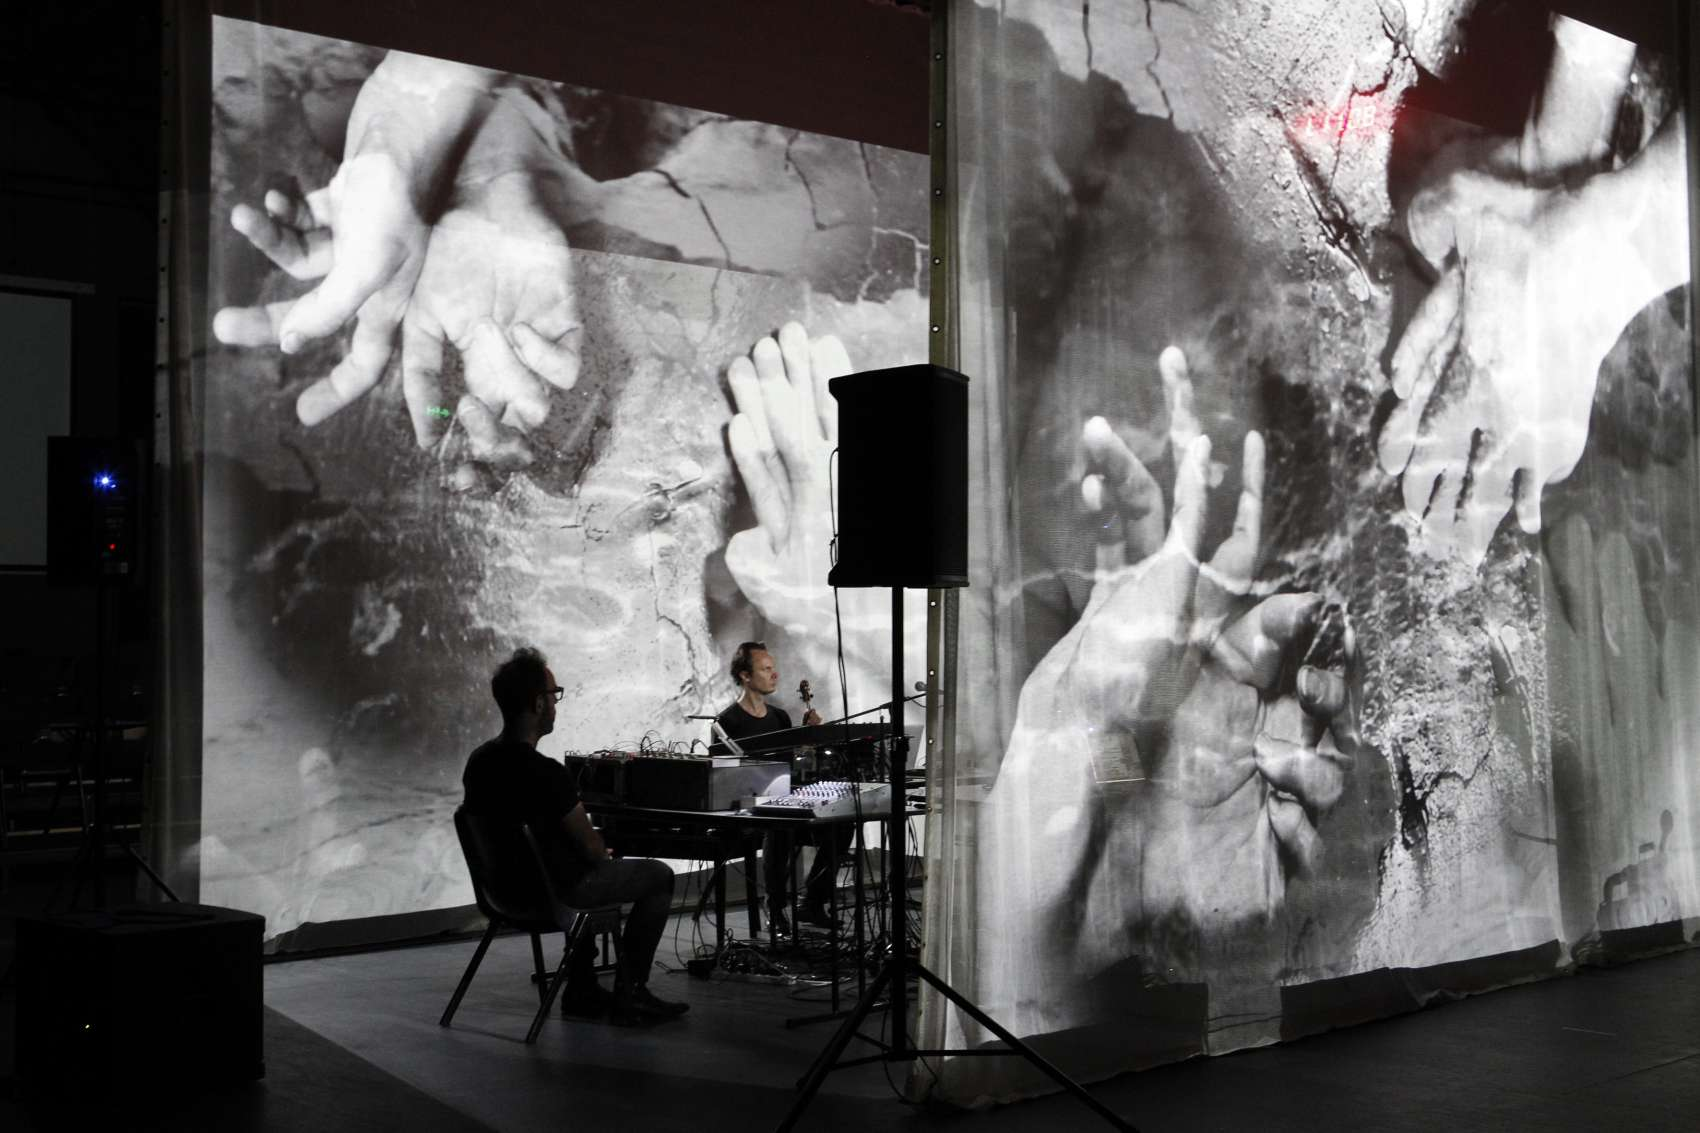 Two seated performers between large screens with projections of hands